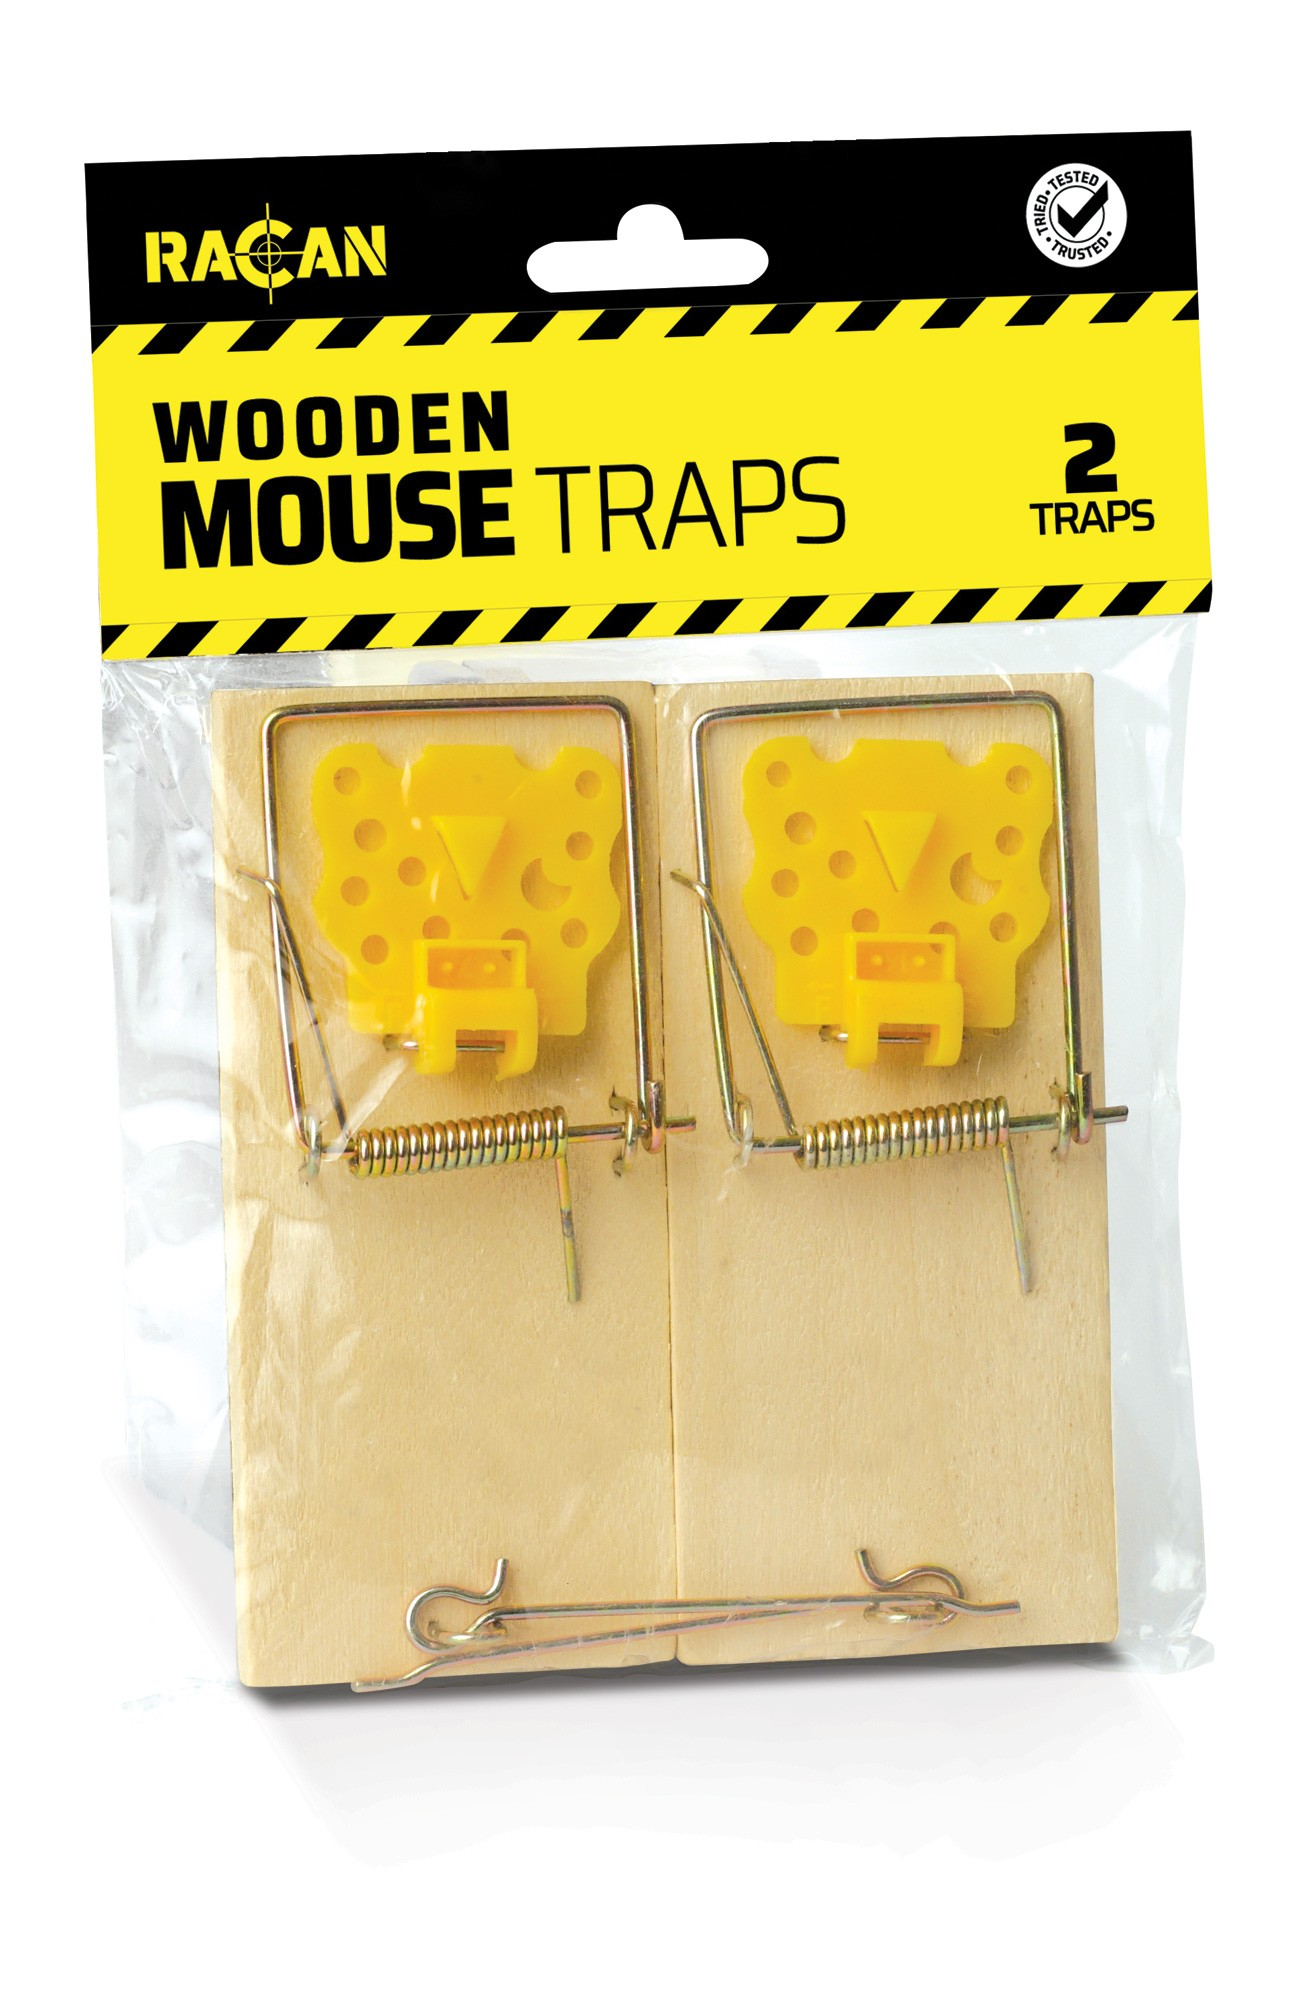 Racan Wooden Mouse Traps